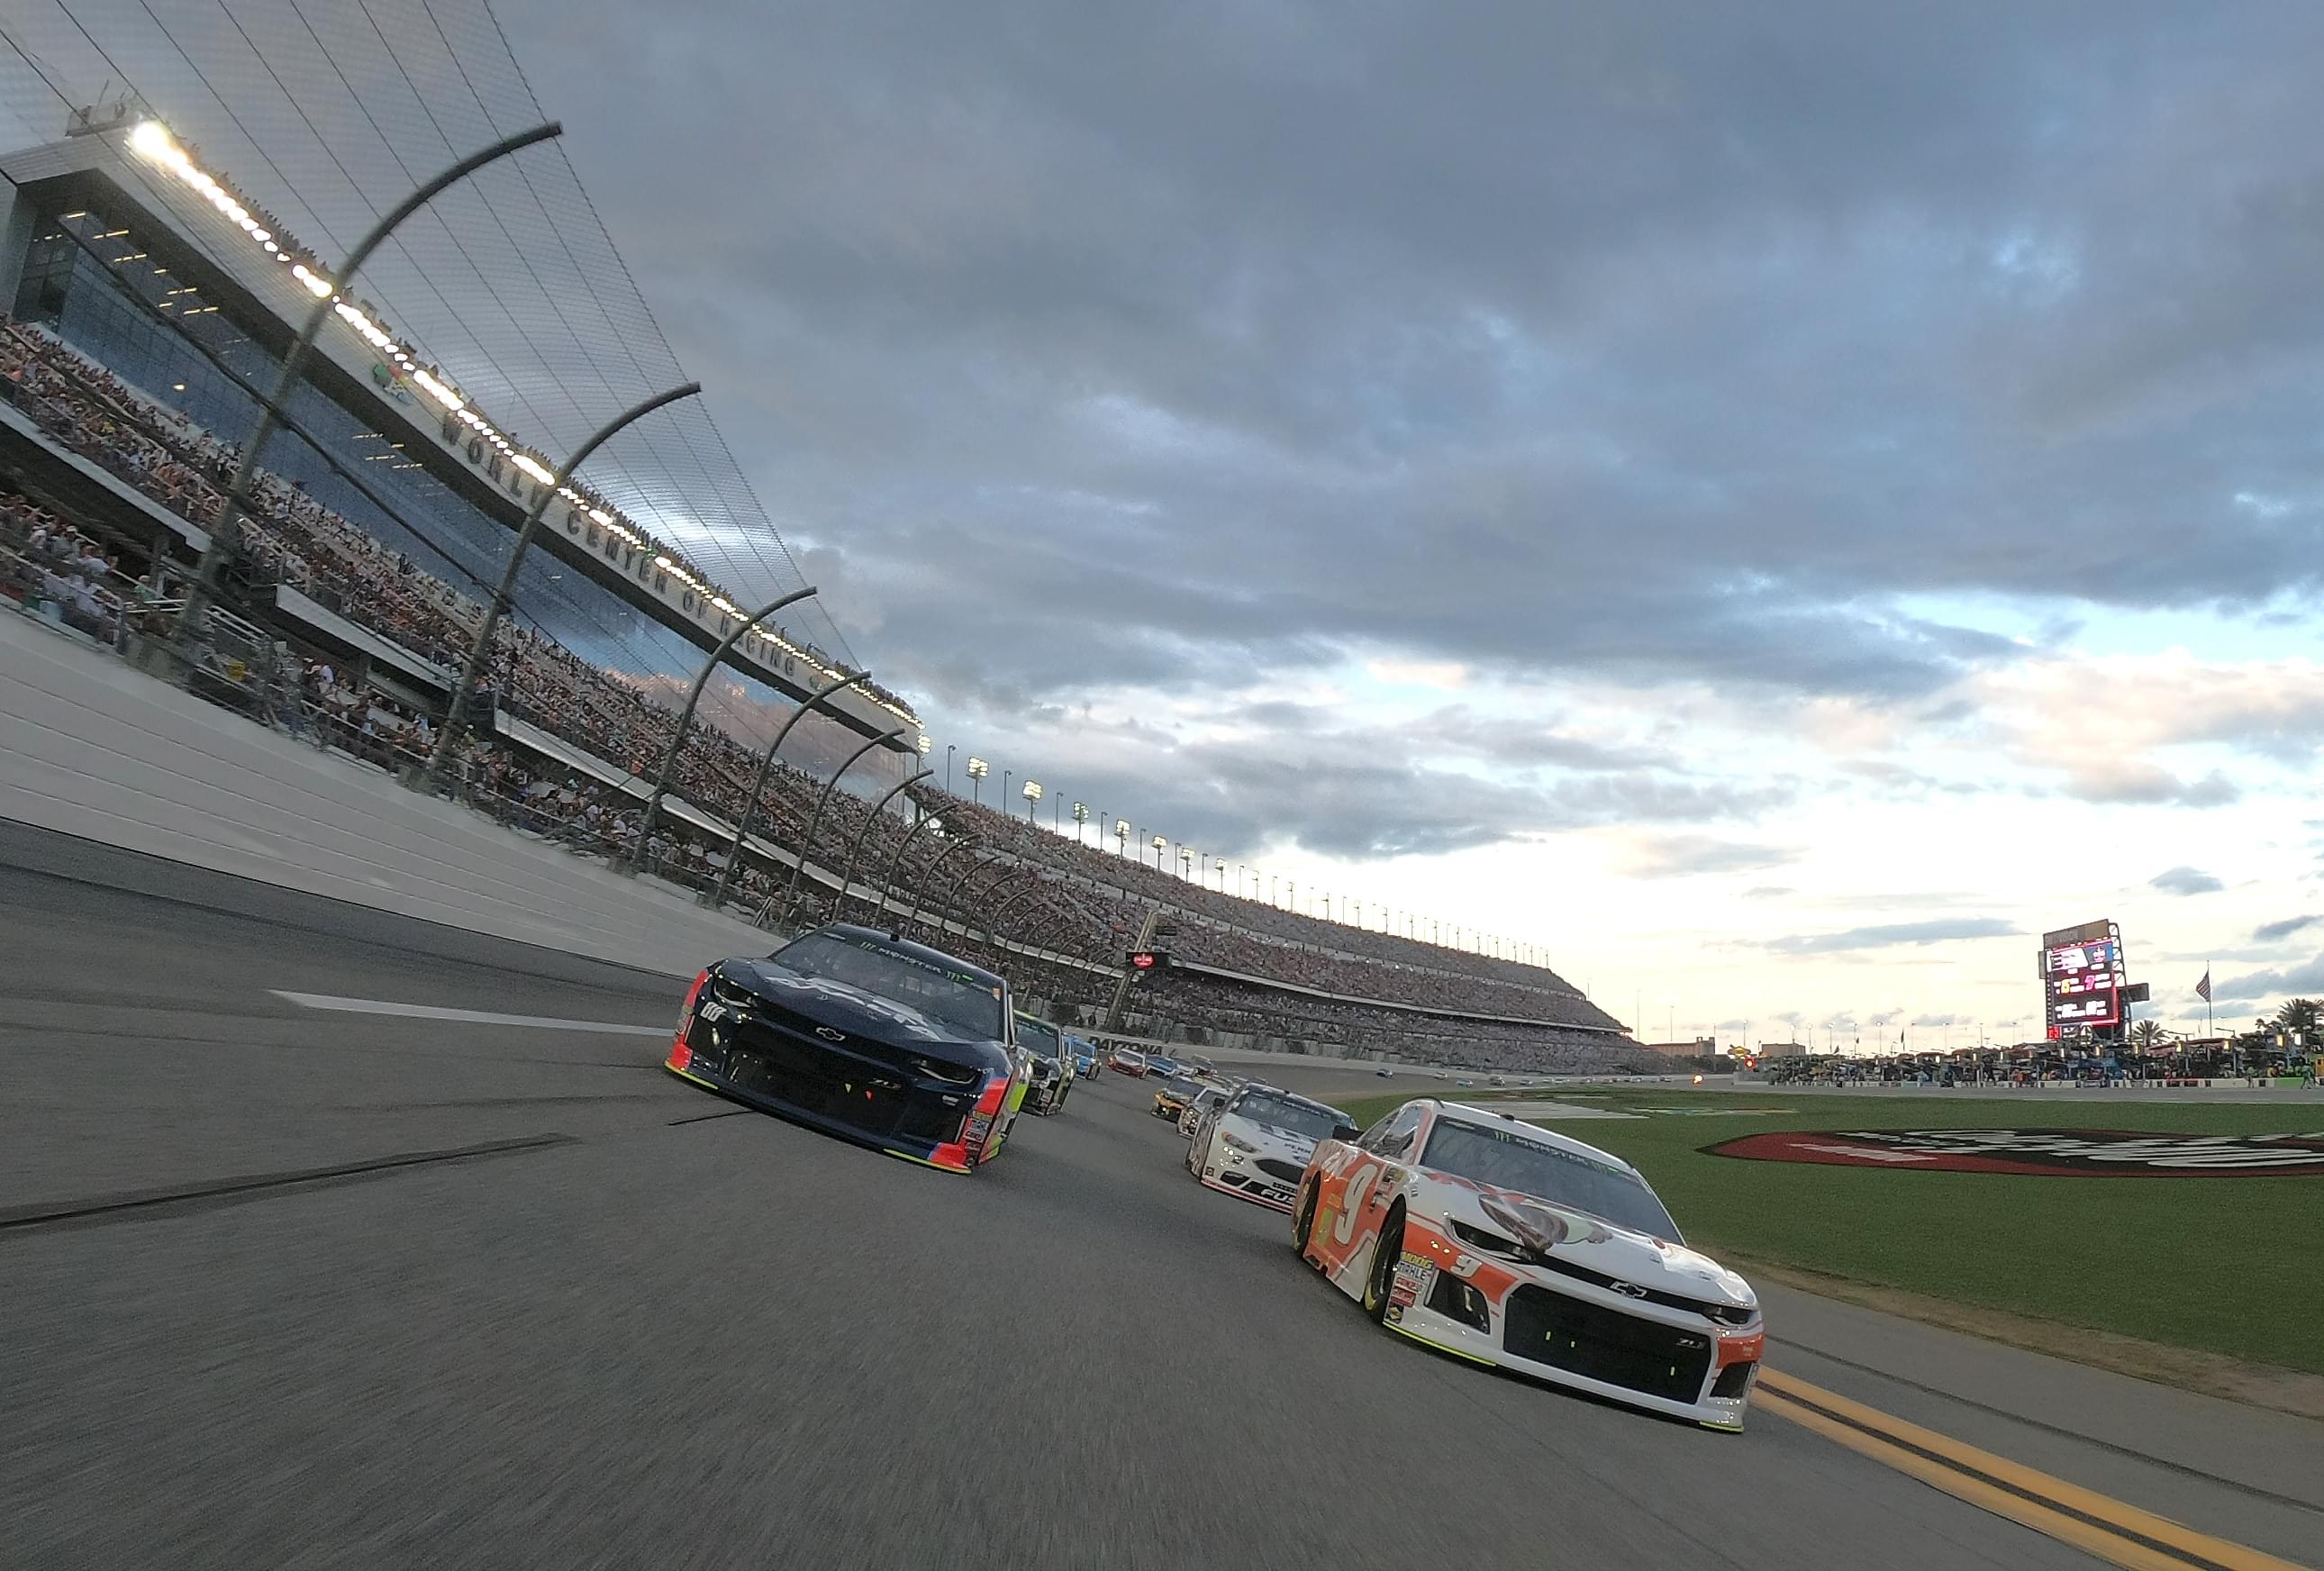 LAMM AT LARGE: NASCAR needs heroes, not changes